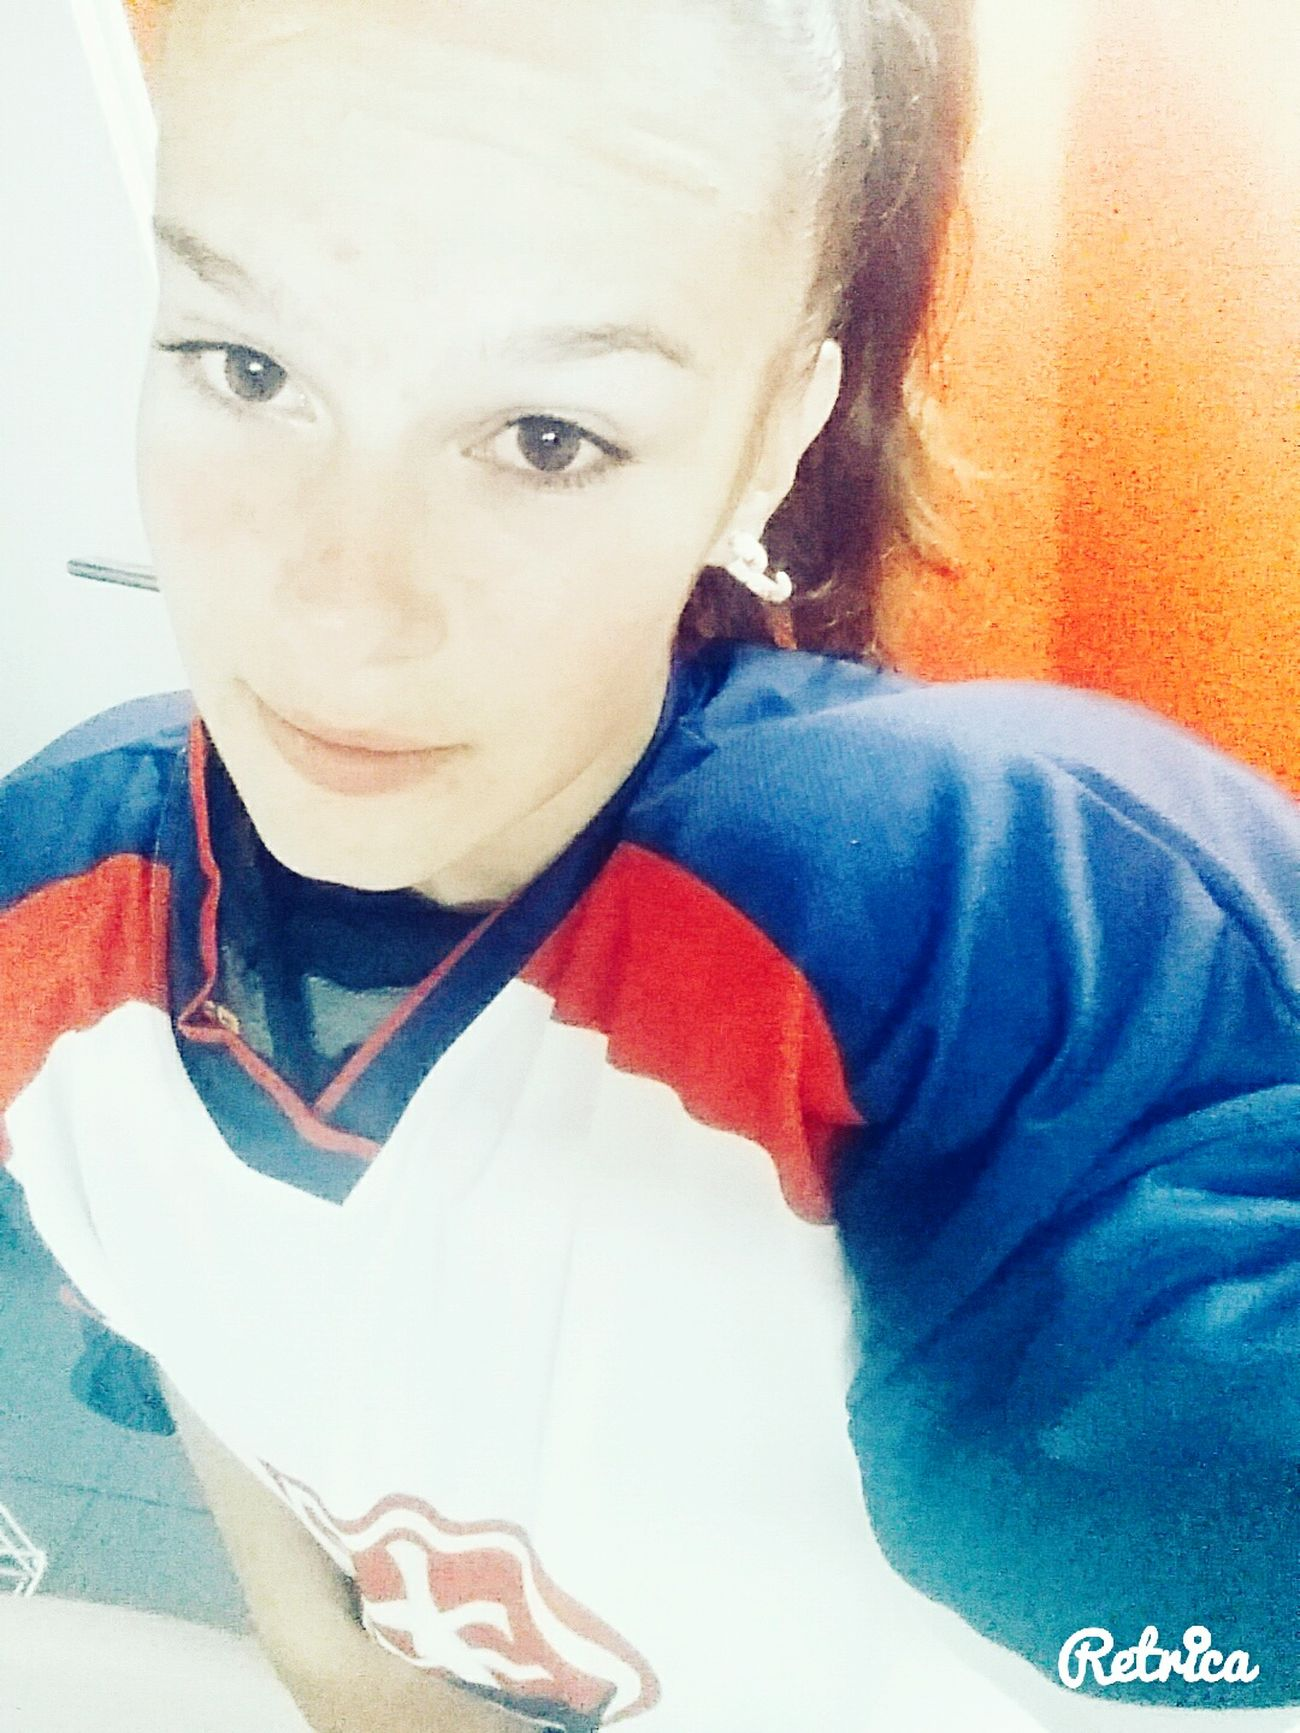 Self Portrait Smile❤ Brown Eyes Sumer&relax Beautiful Day Piece✌ Ice Hockey Color Portrait Hockey Life Hockey Is My Love ✌🙊💕💕